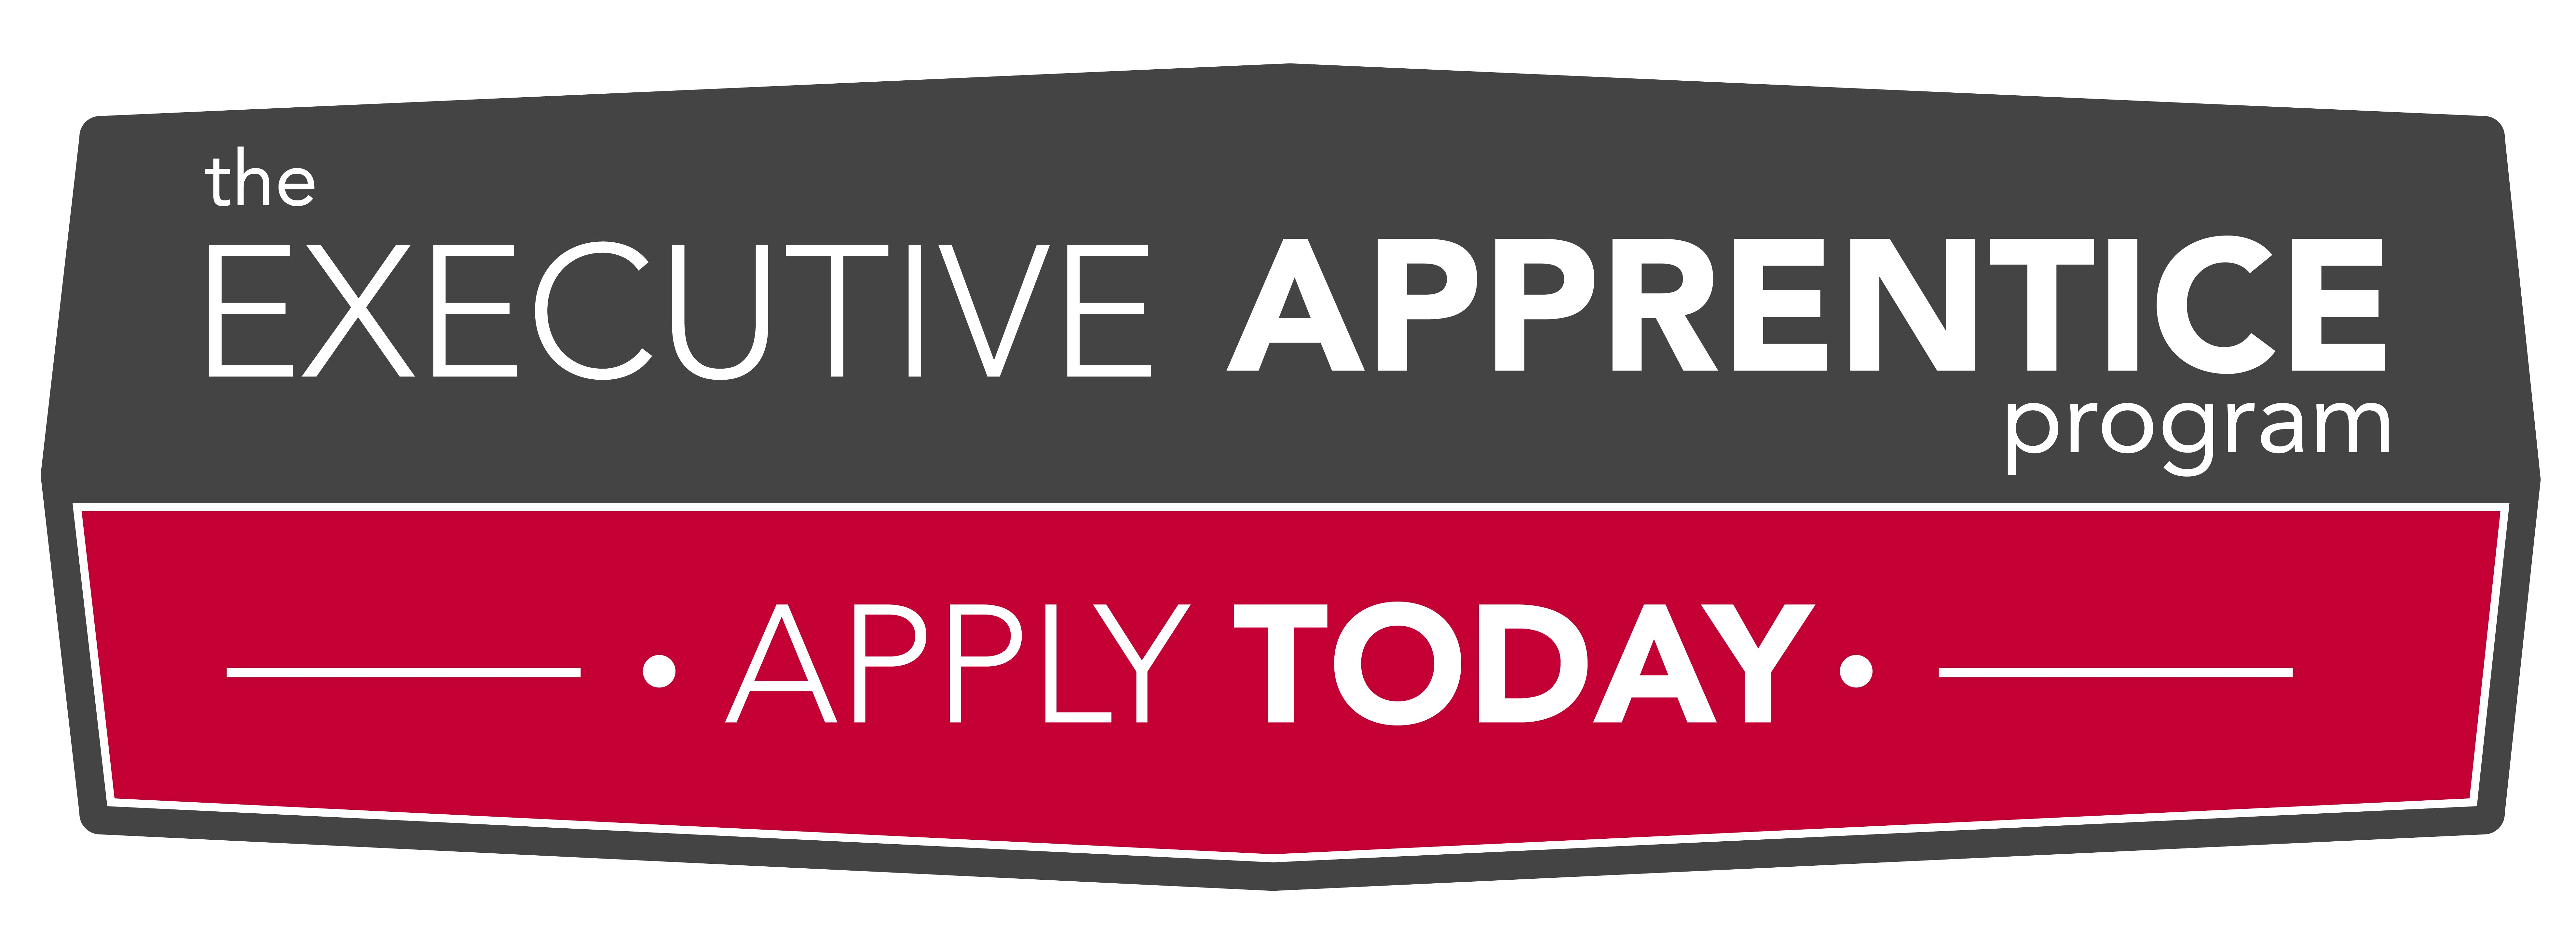 Executive Apprentice Program